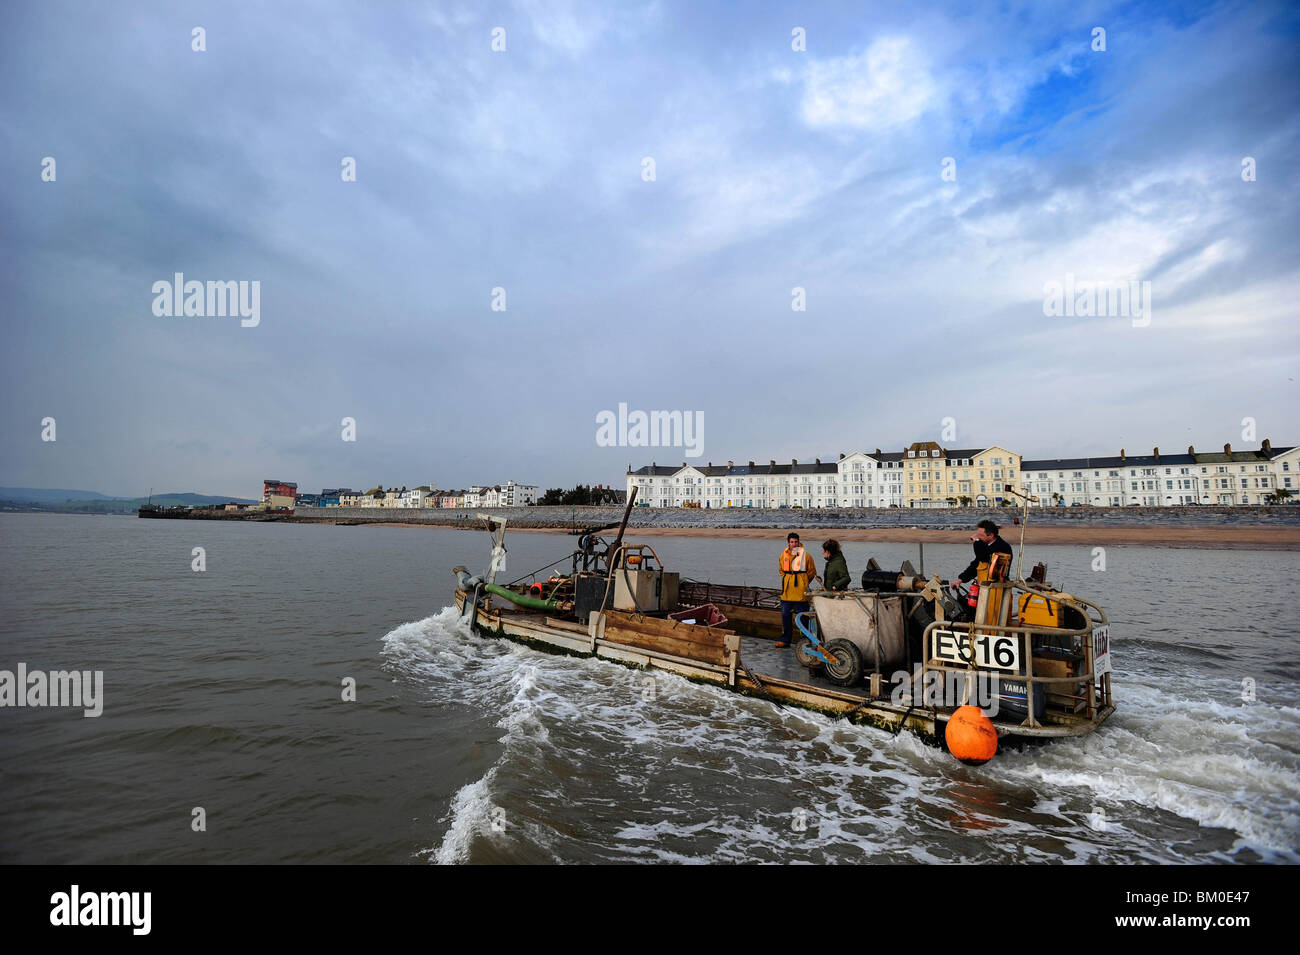 A Mussel barge fishing for mussels on the Exe Estuary, Exmouth, Devon. Stock Photo